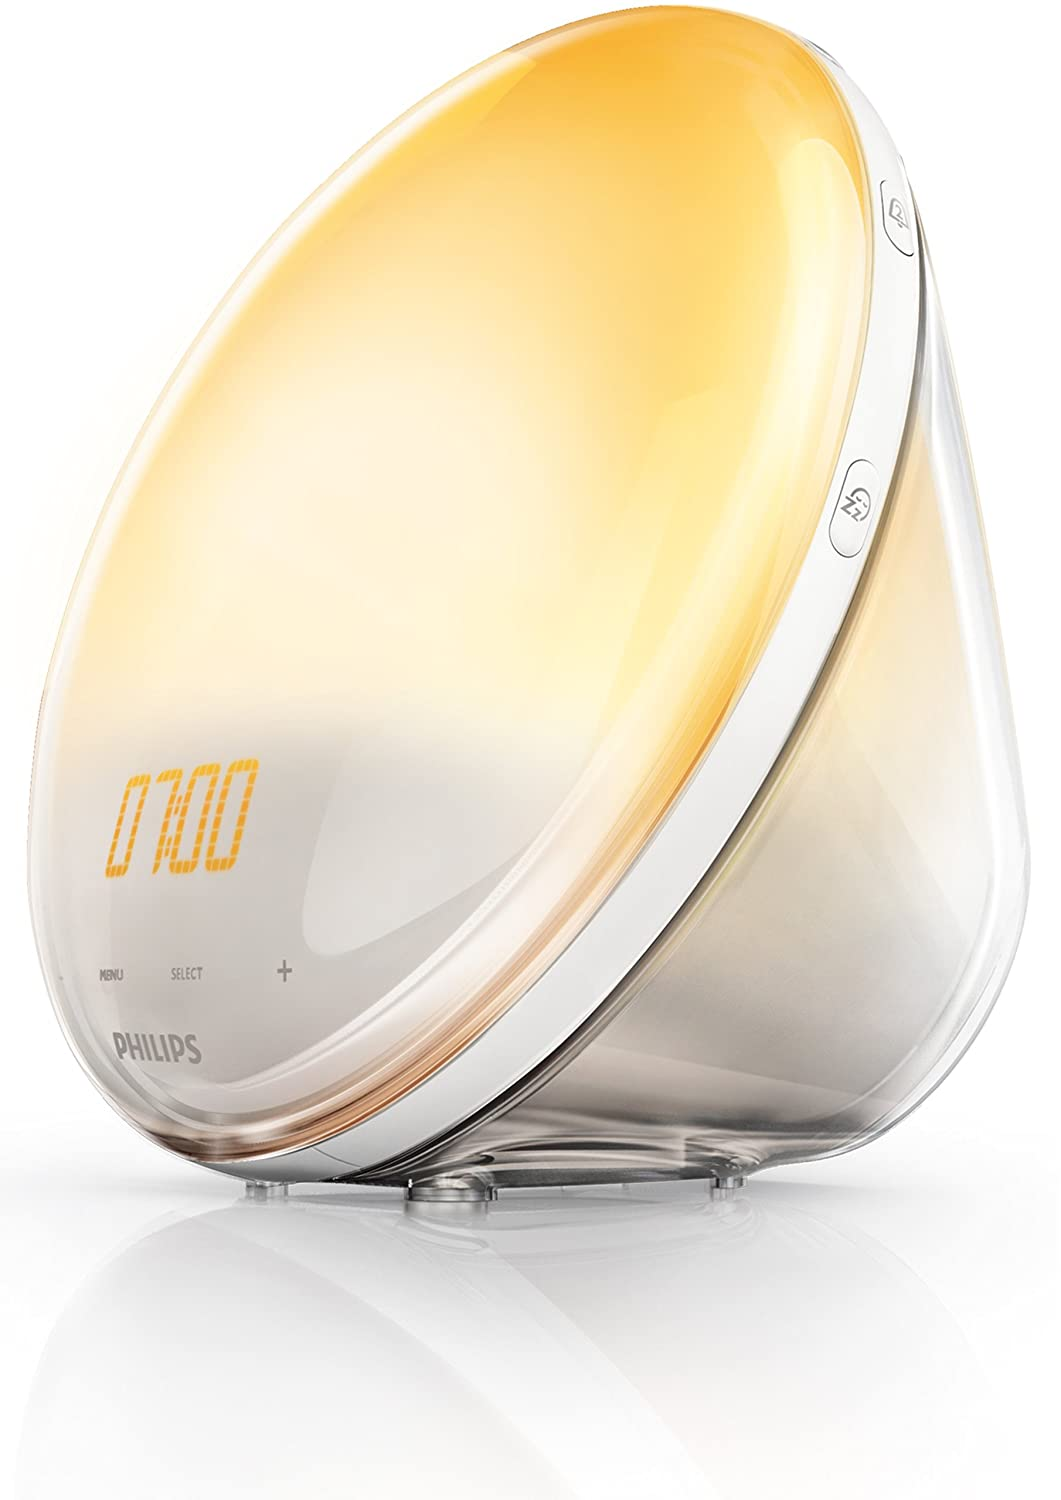 Philips Wake Up Light HF Despertador con sonidos naturales sistema autoajustable de